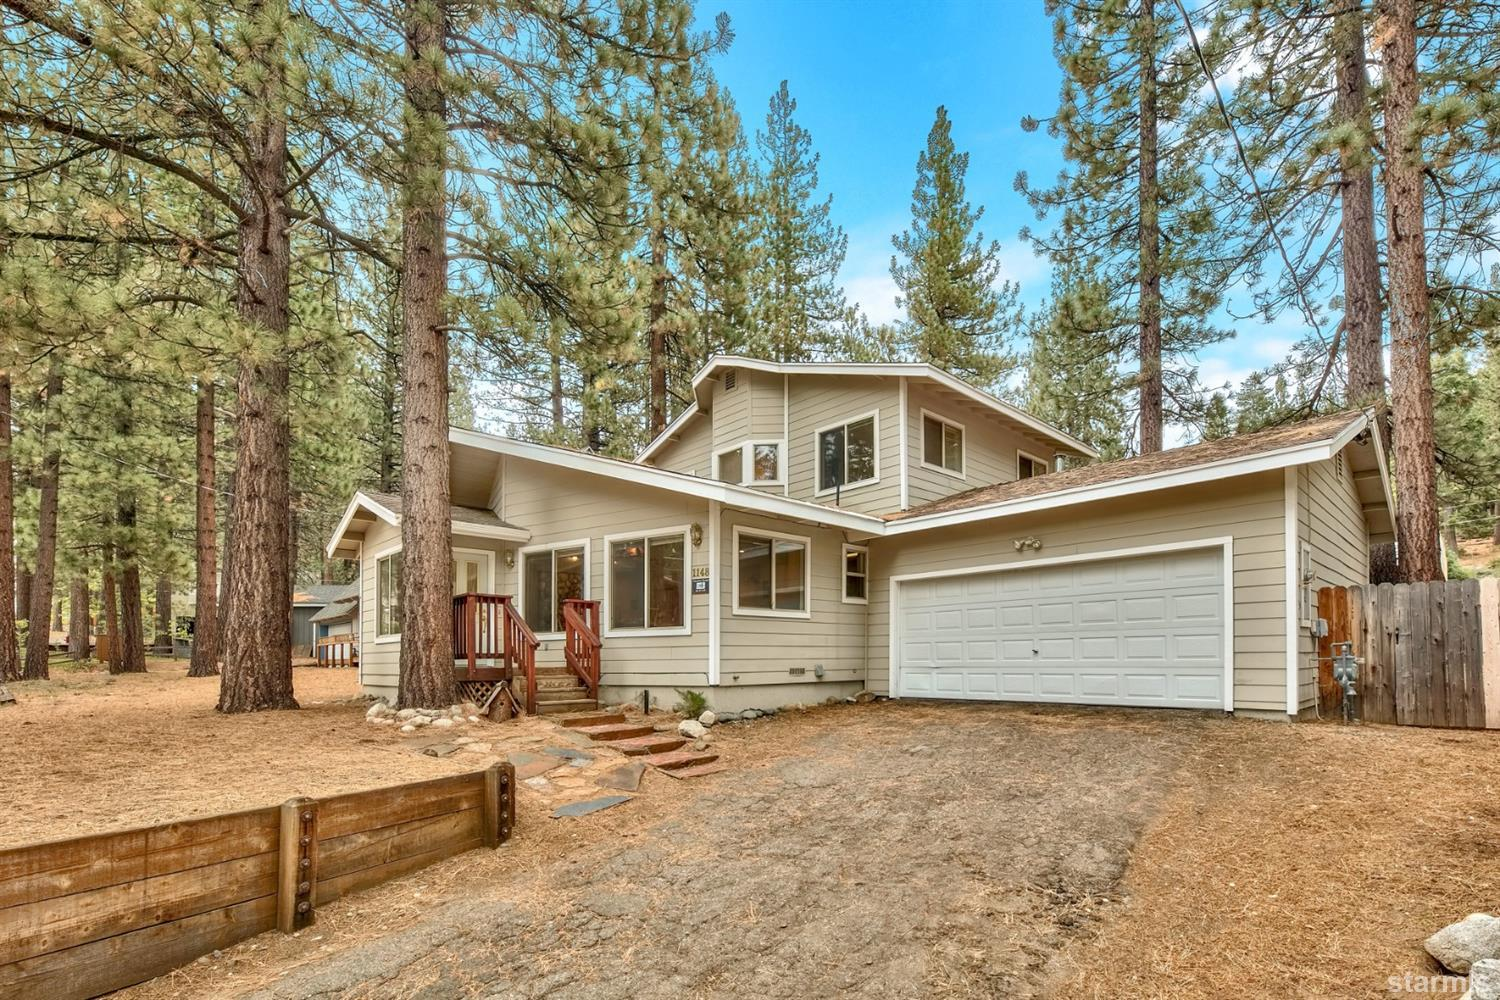 Image for 1148 Golden Bear Trail, South Lake Tahoe, CA 96150